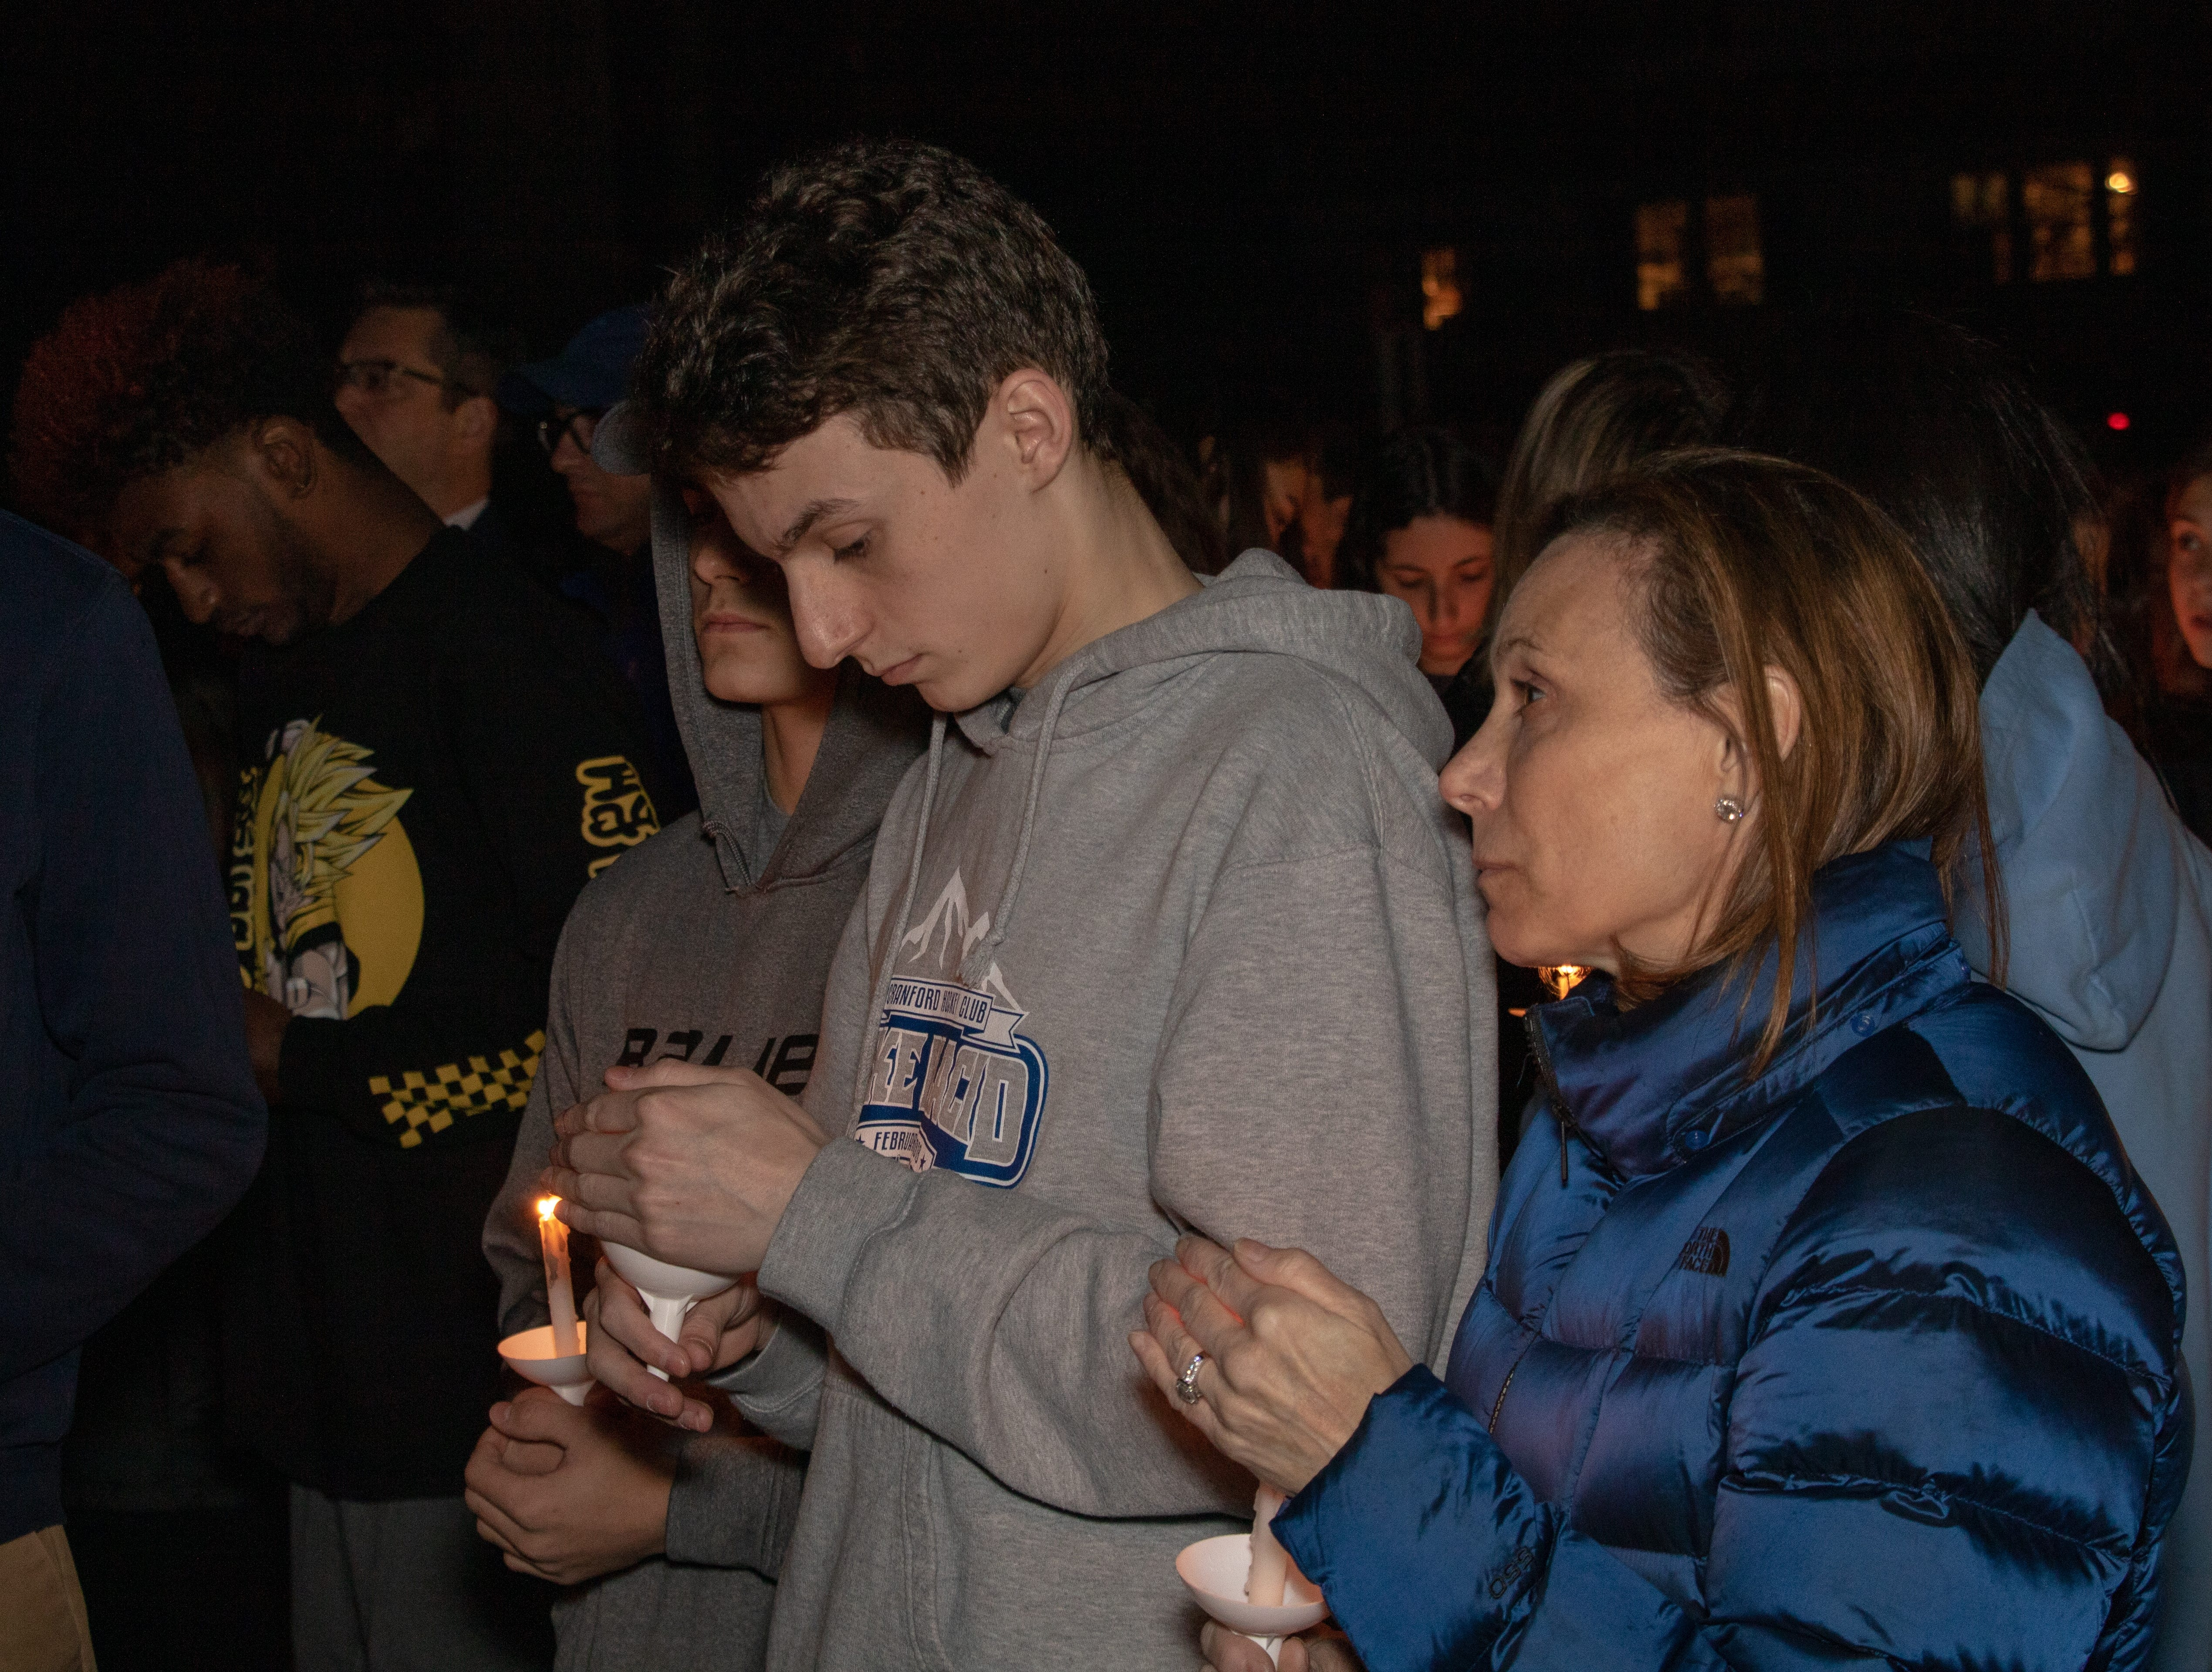 A vigil was held for Westfield High School Principal Dr. Derrick Nelson who died trying to save the life of a child he did not know at the school at 8:15 p.m. today.